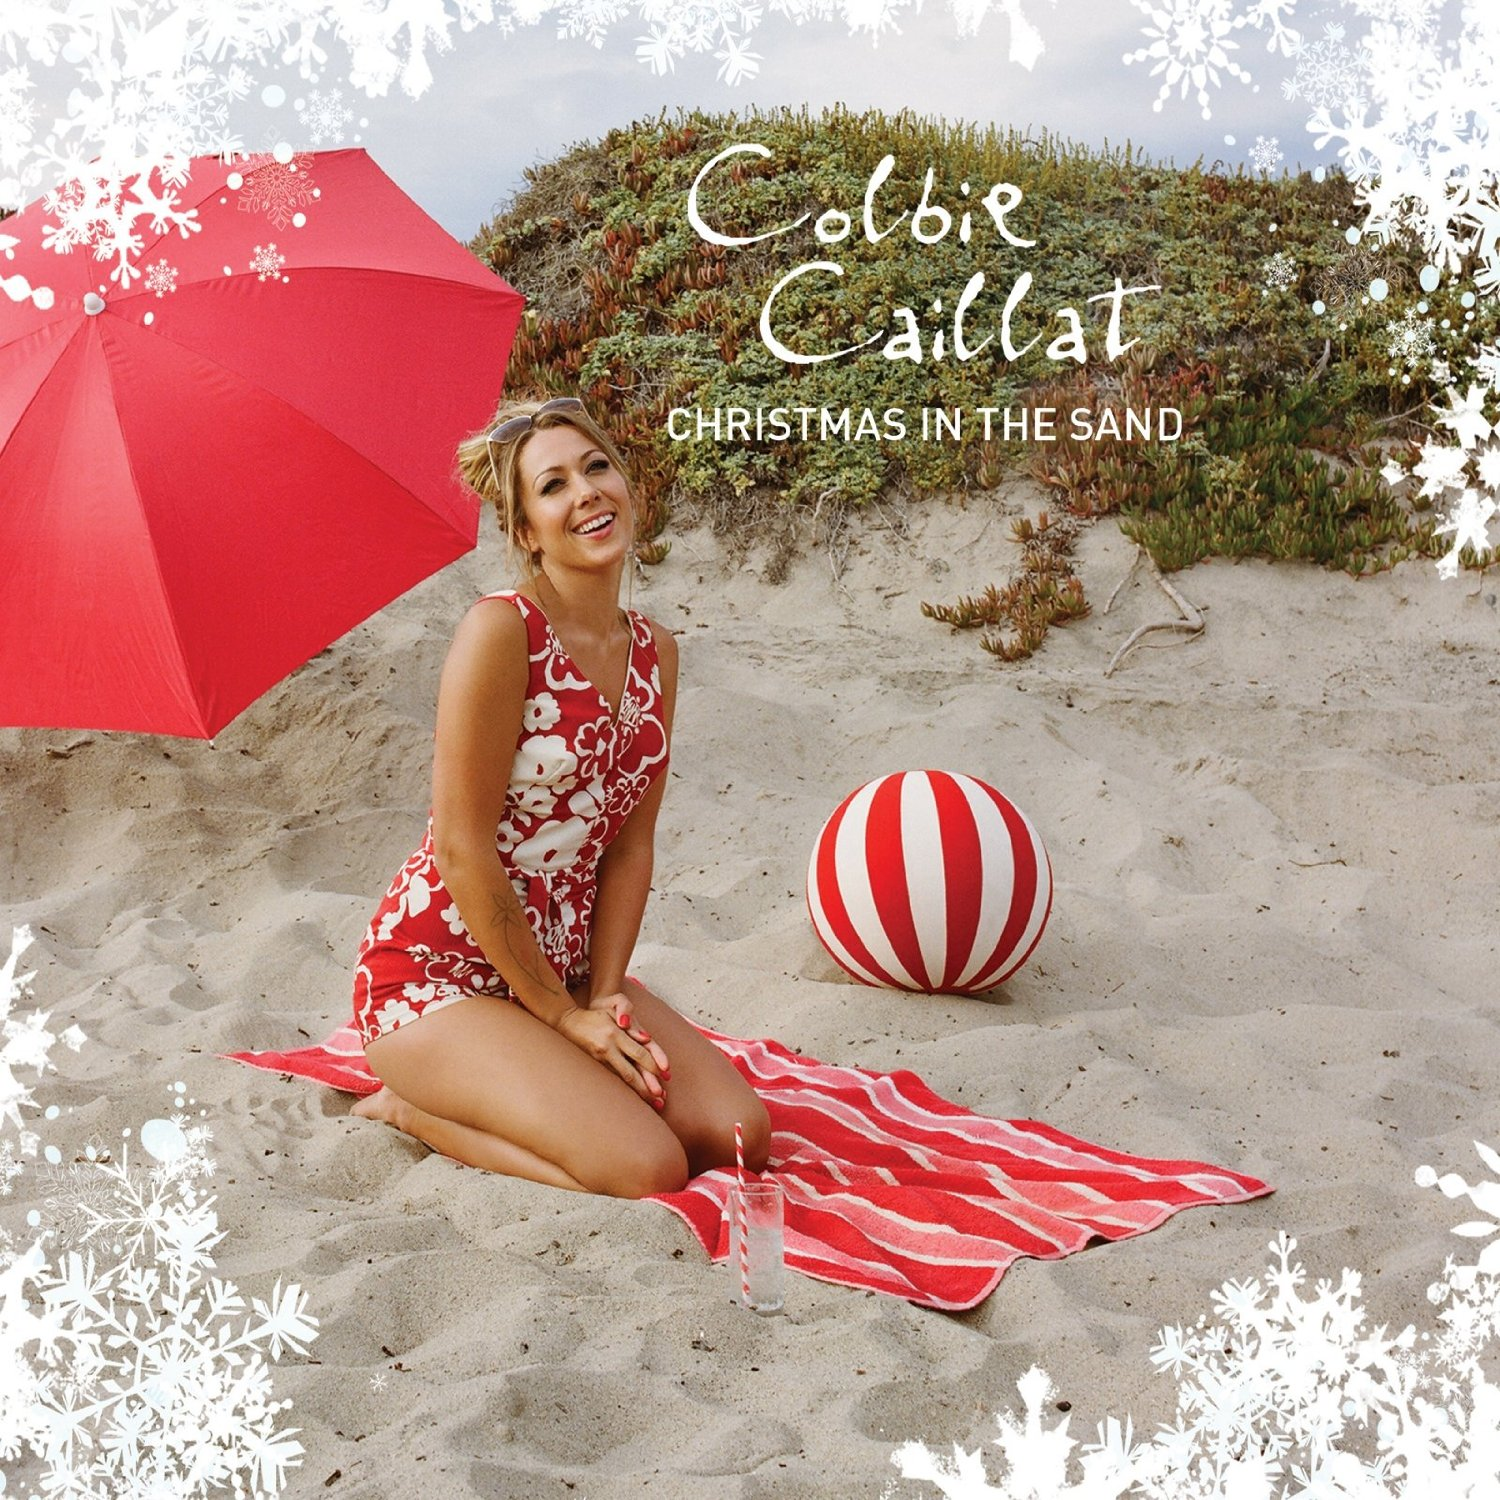 Christmas in the Sand by Colbie Caillat